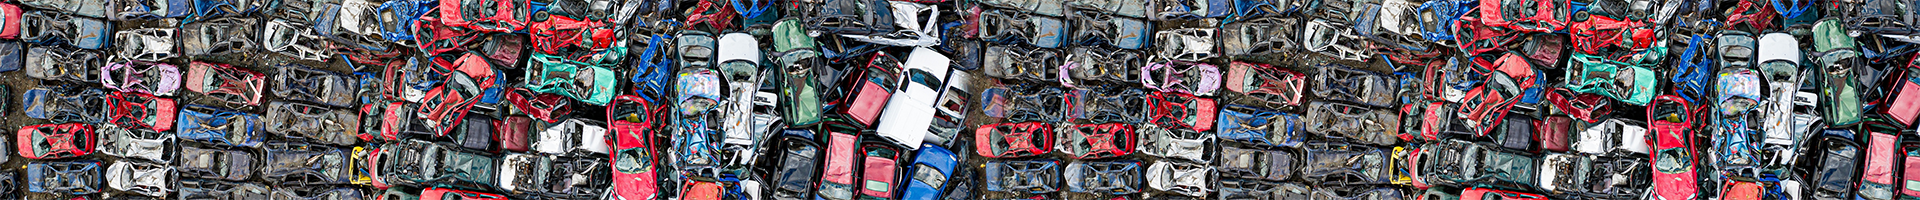 scrap-car-recycling